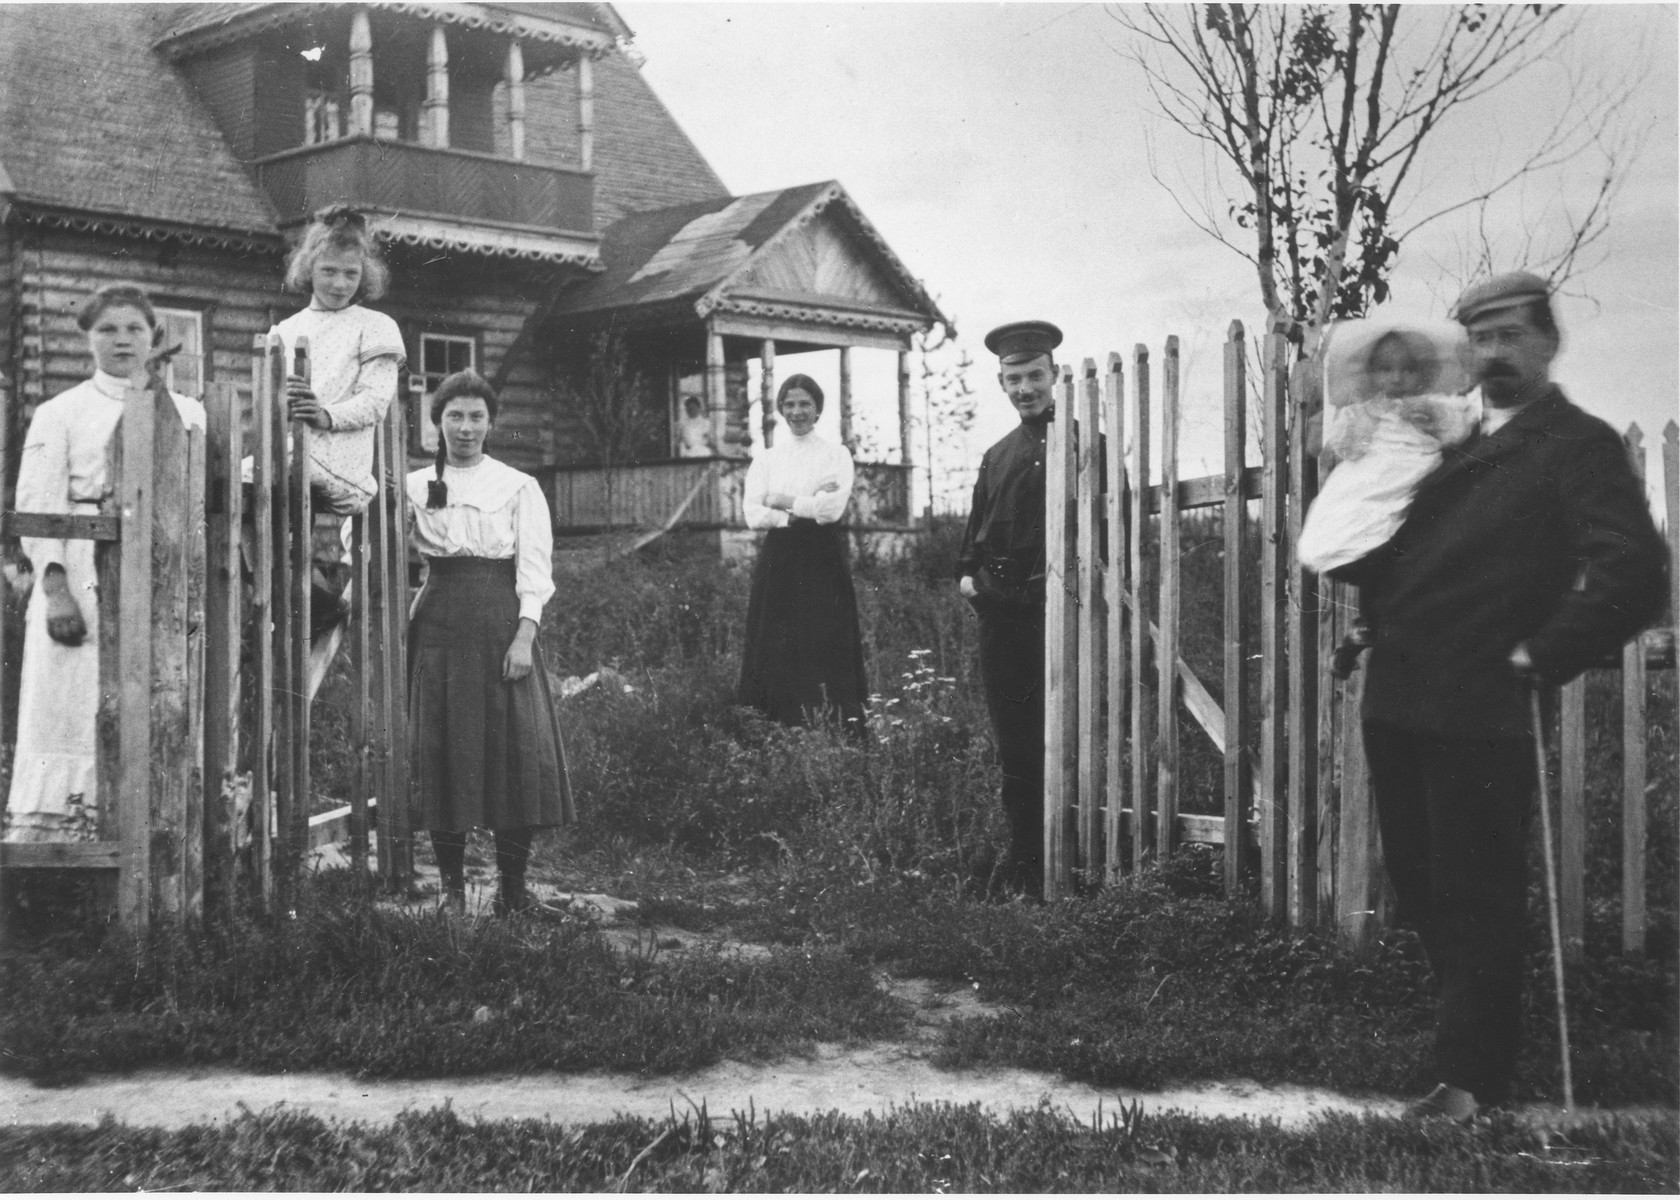 Members of the Mikolaevsky family at their dacha in the village of Strelna, a suburb of St. Petersburg.